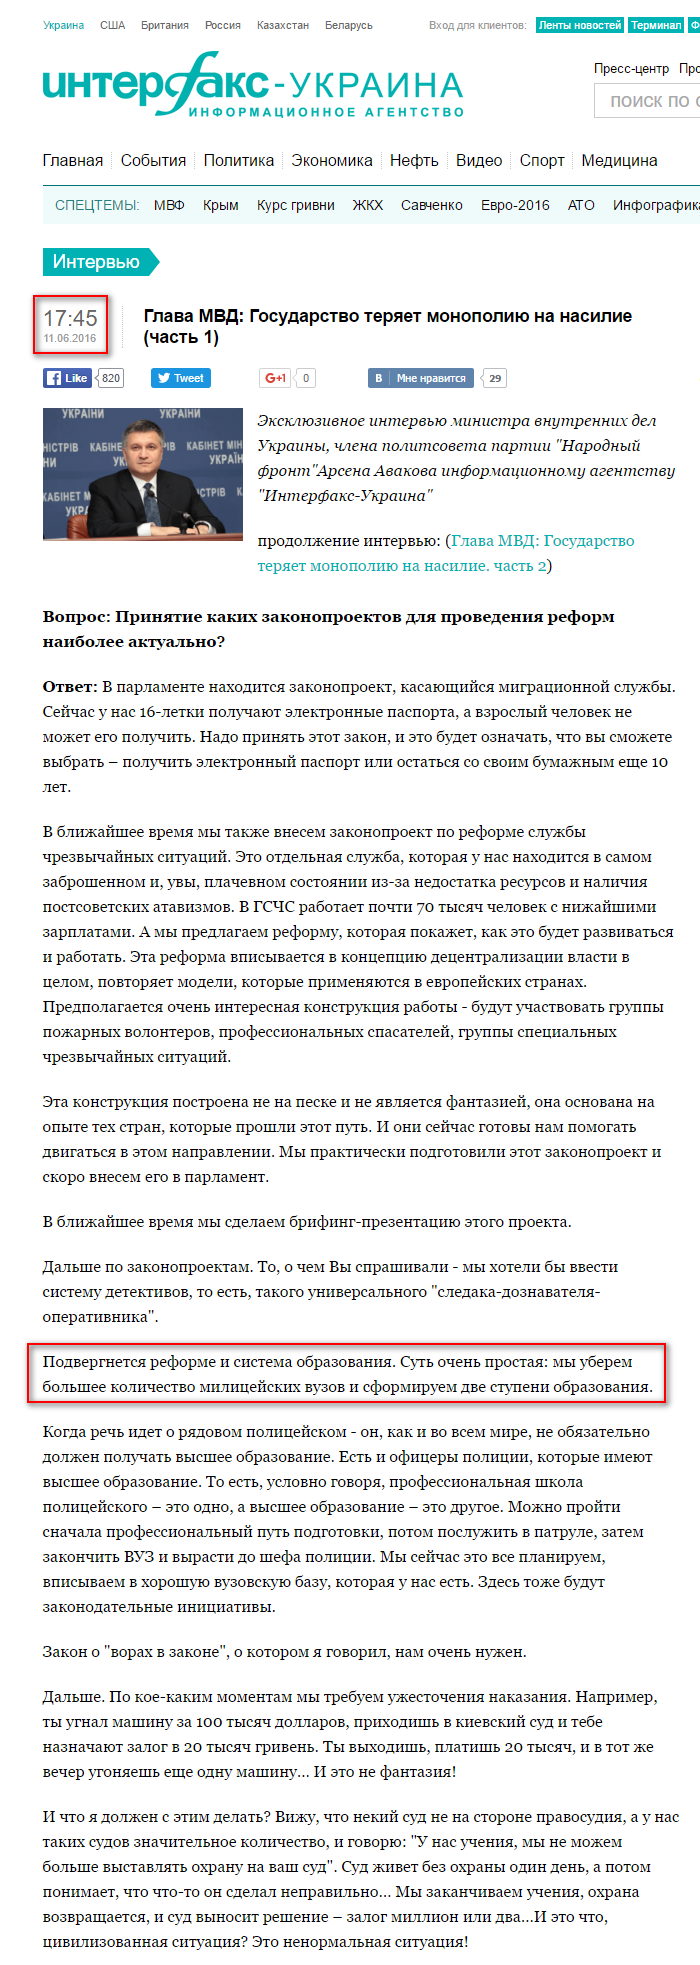 http://interfax.com.ua/news/interview/349567.html